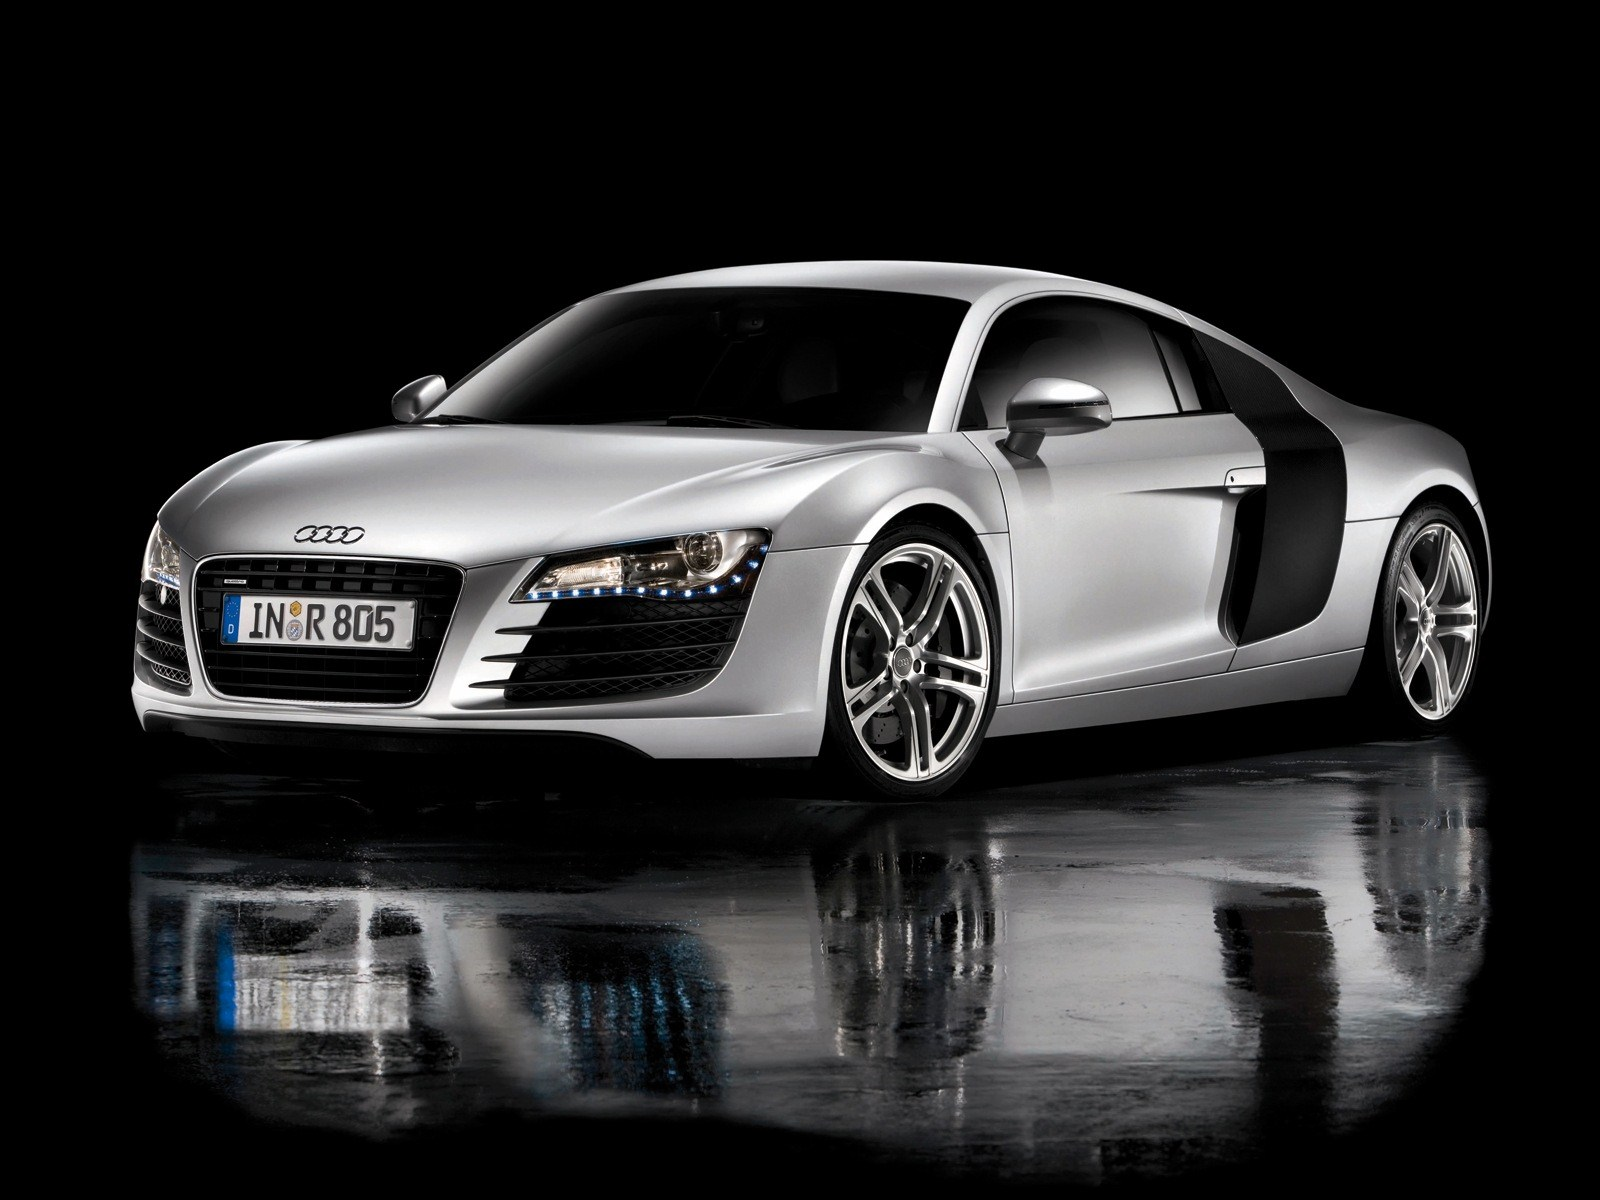 2014 audi rs8 first looks photos prices information wallpapers. Black Bedroom Furniture Sets. Home Design Ideas